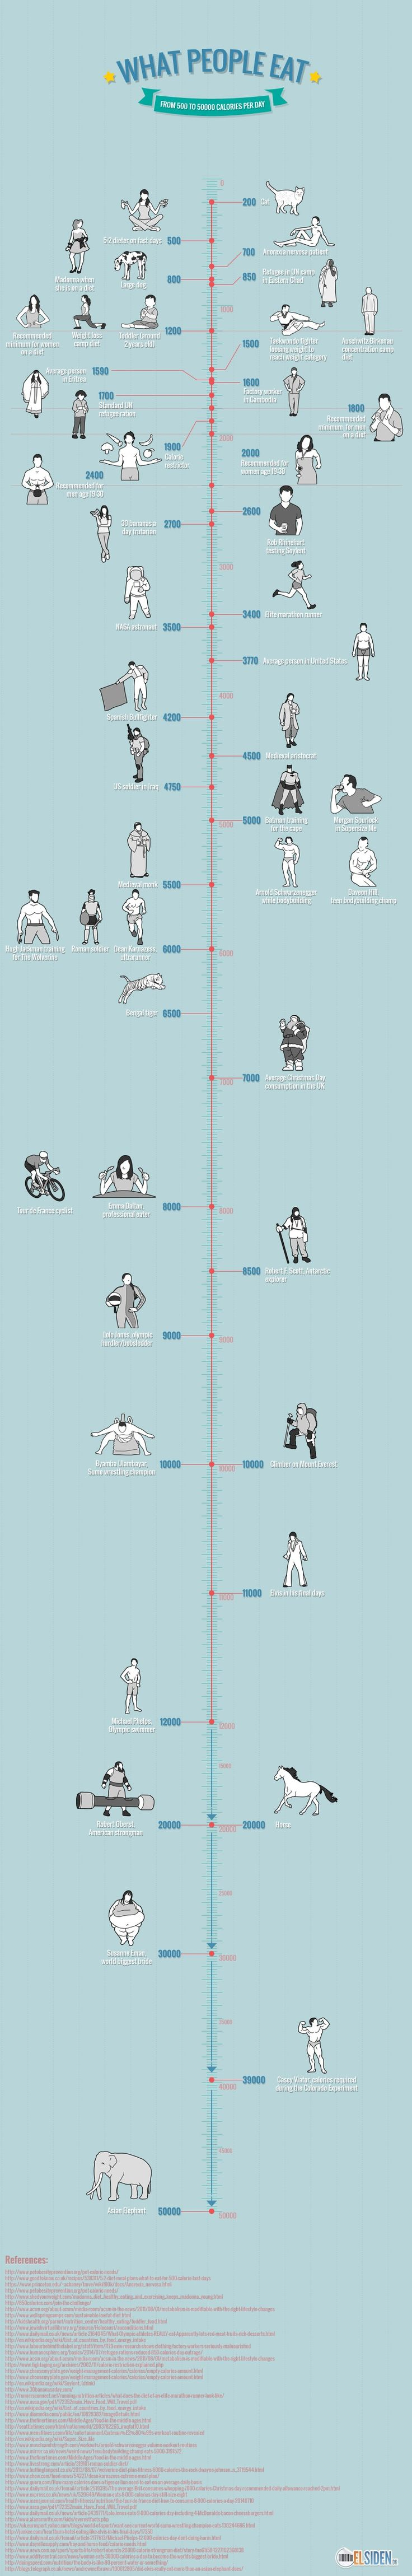 382 best InfoGrafix images on Pinterest | Info graphics, Charts and ...